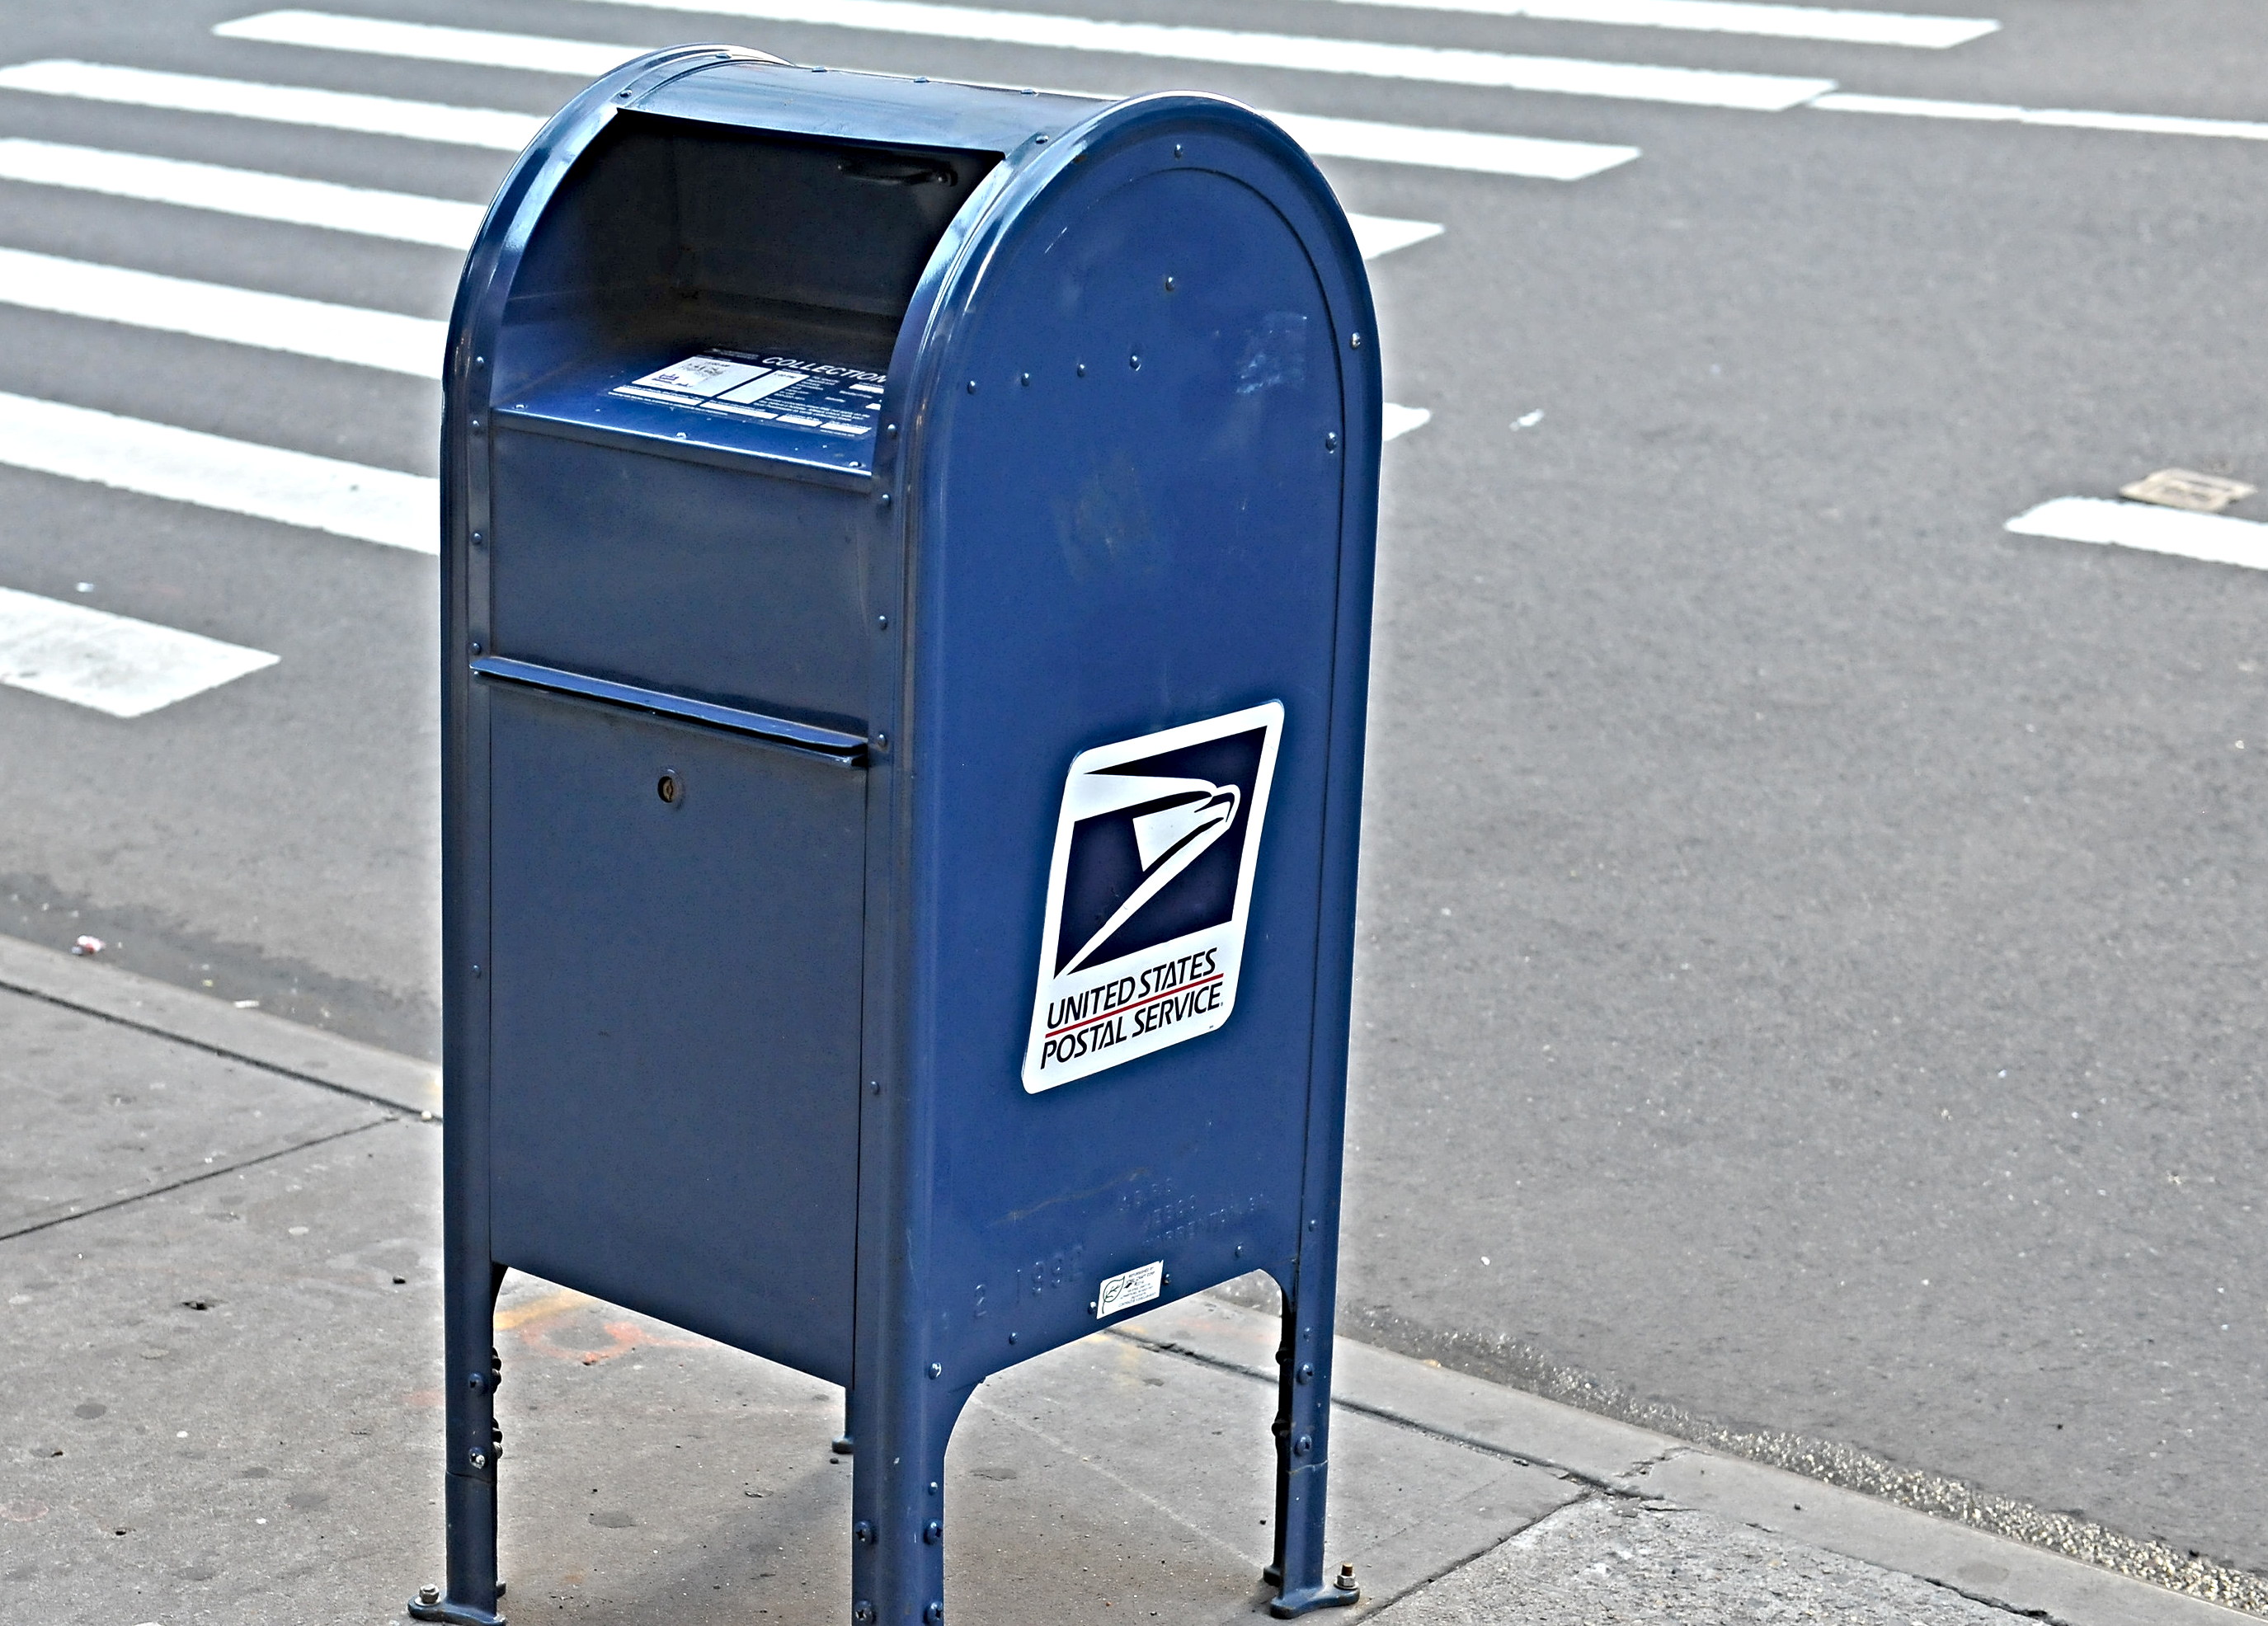 Can I drop my package into one of those USPS mail collection boxes?